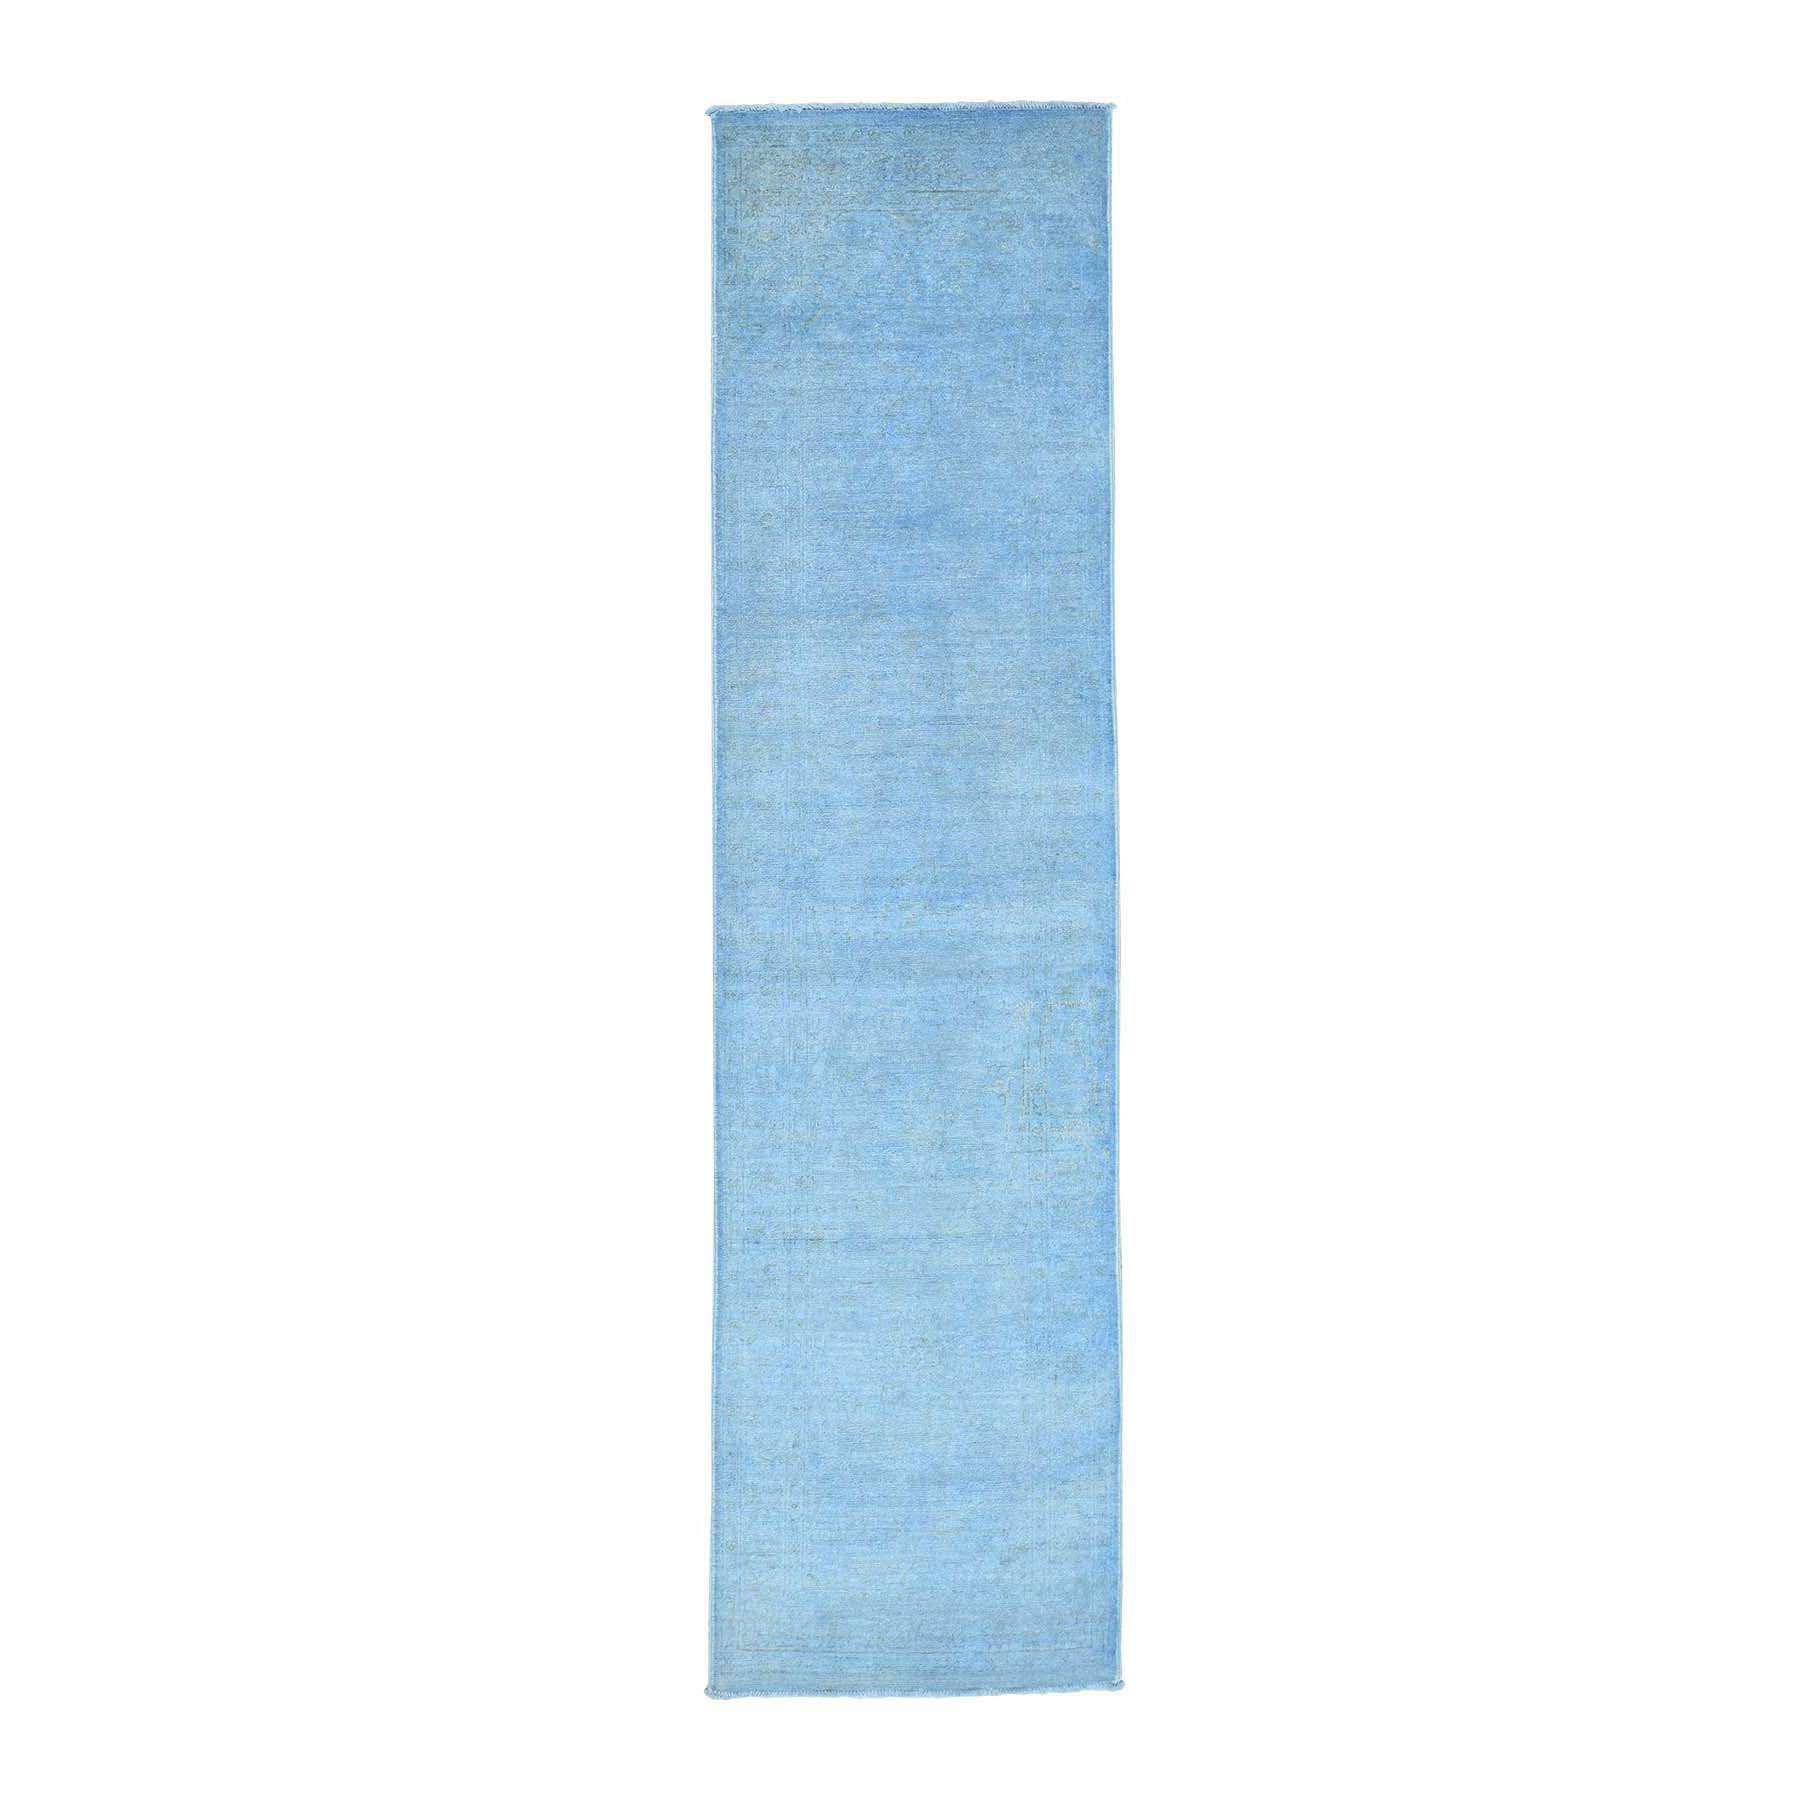 "2'6""X9'8"" Hand Knotted Sky Blue Peshawar Overdyed Pure Wool Runner Rug moacea6a"